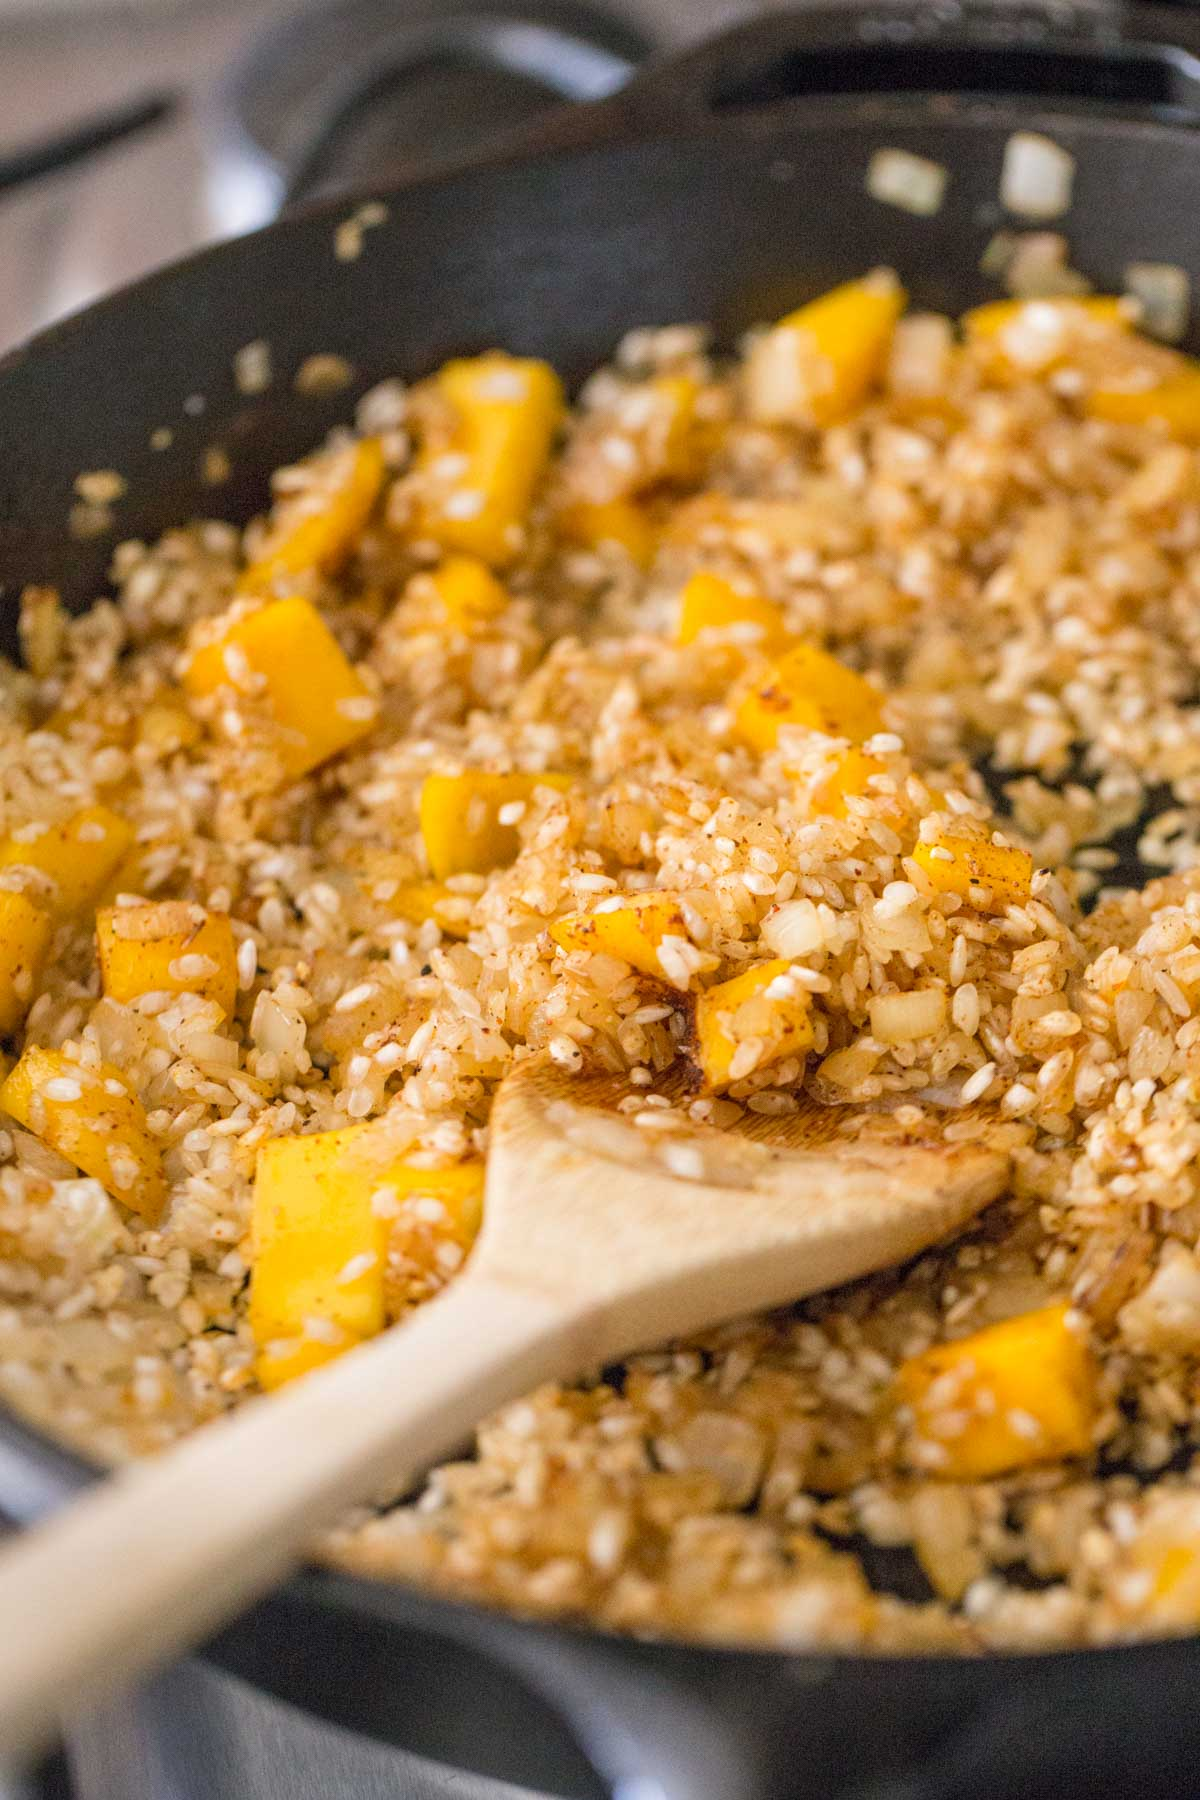 The rice mixture with the mangos in the skillet for the Chili Lime Mango Chicken and Rice.